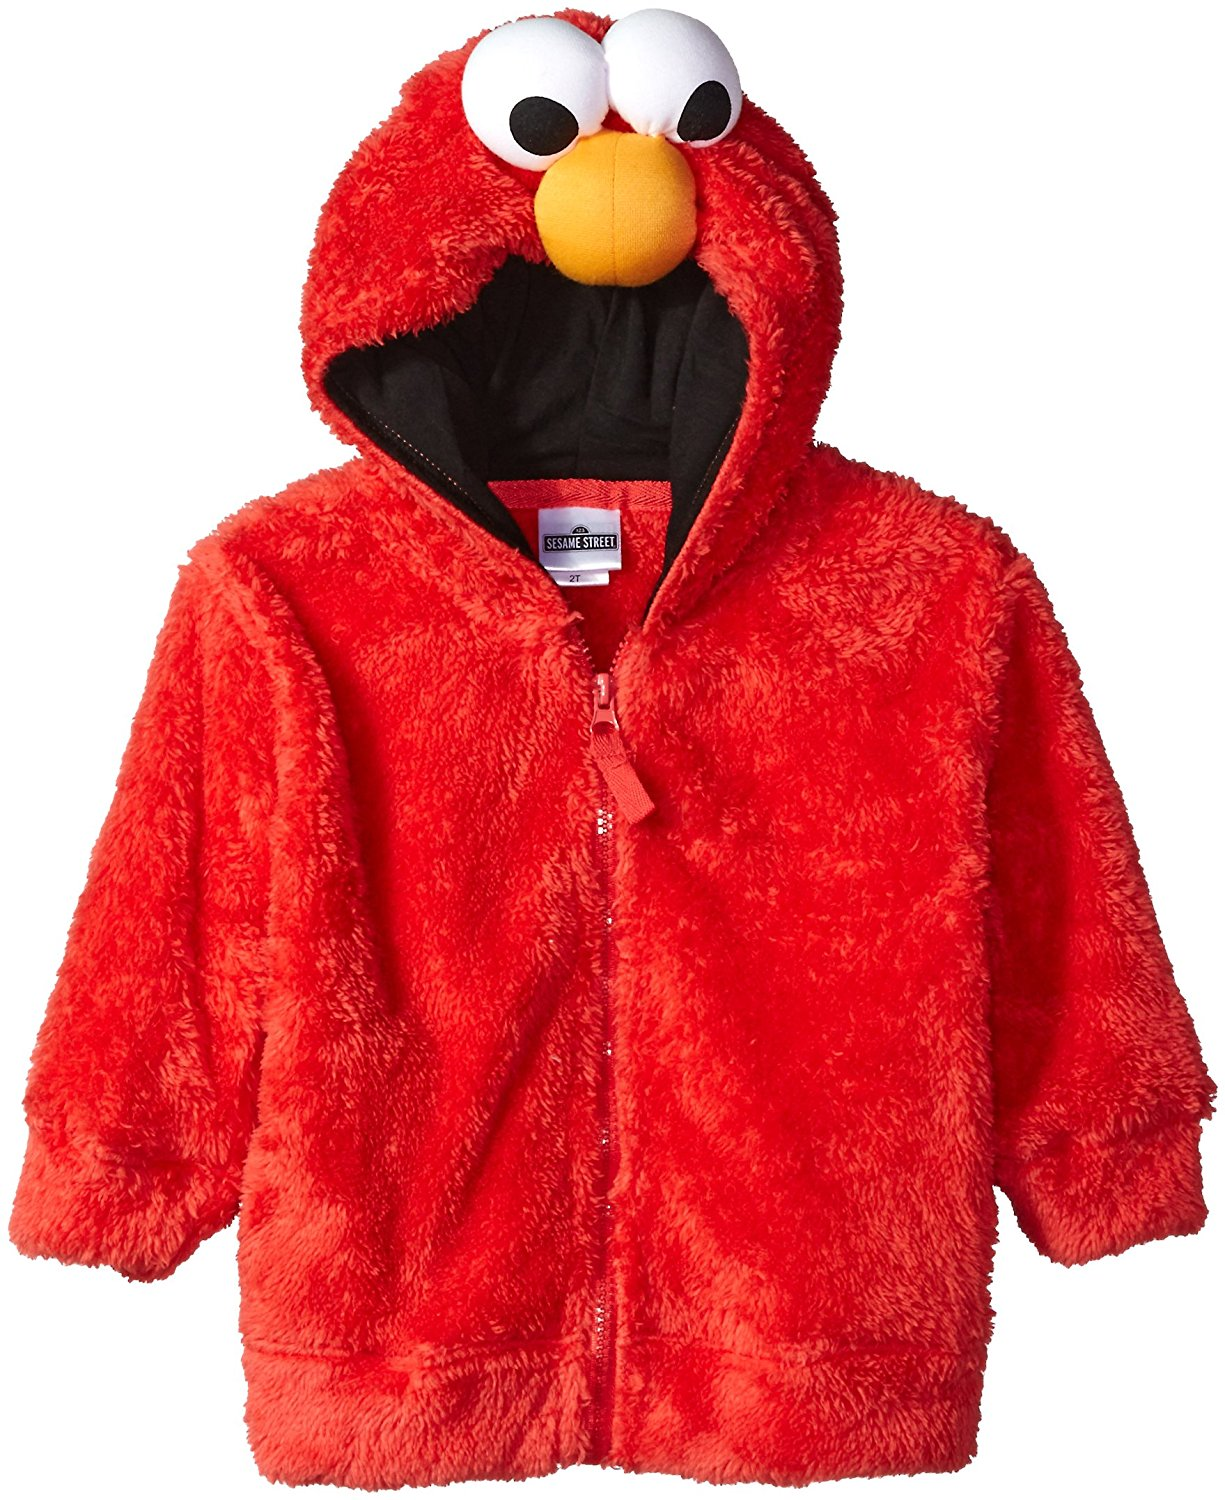 Sesame Street Elmo Little Boys Costume Hoodie, Red by Freeze